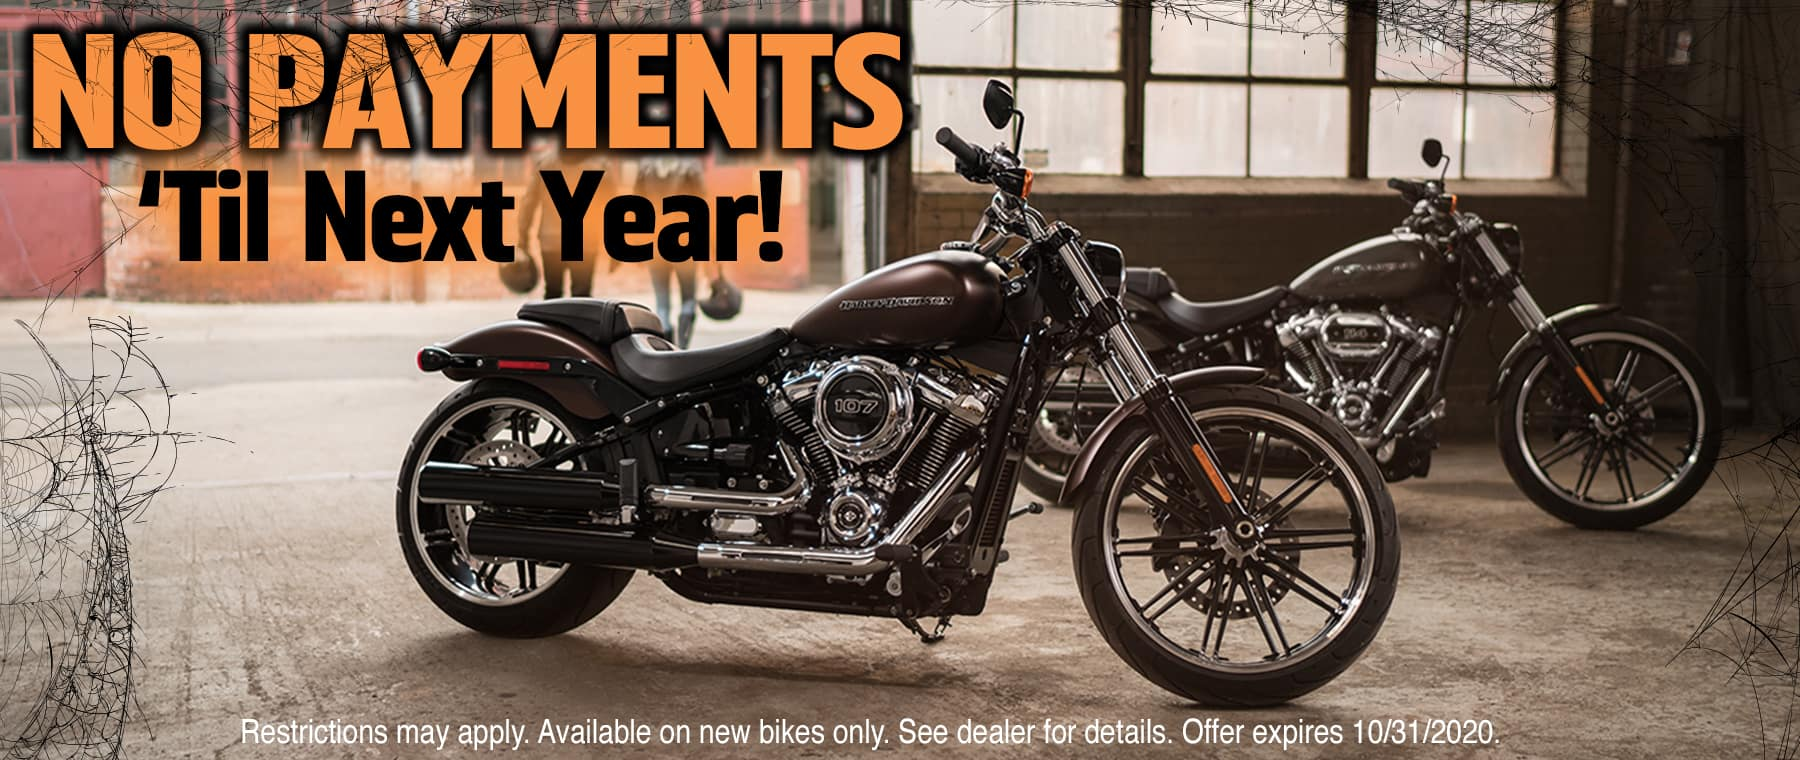 No Payments Until Next Year at Fort Bragg Harley-Davidson